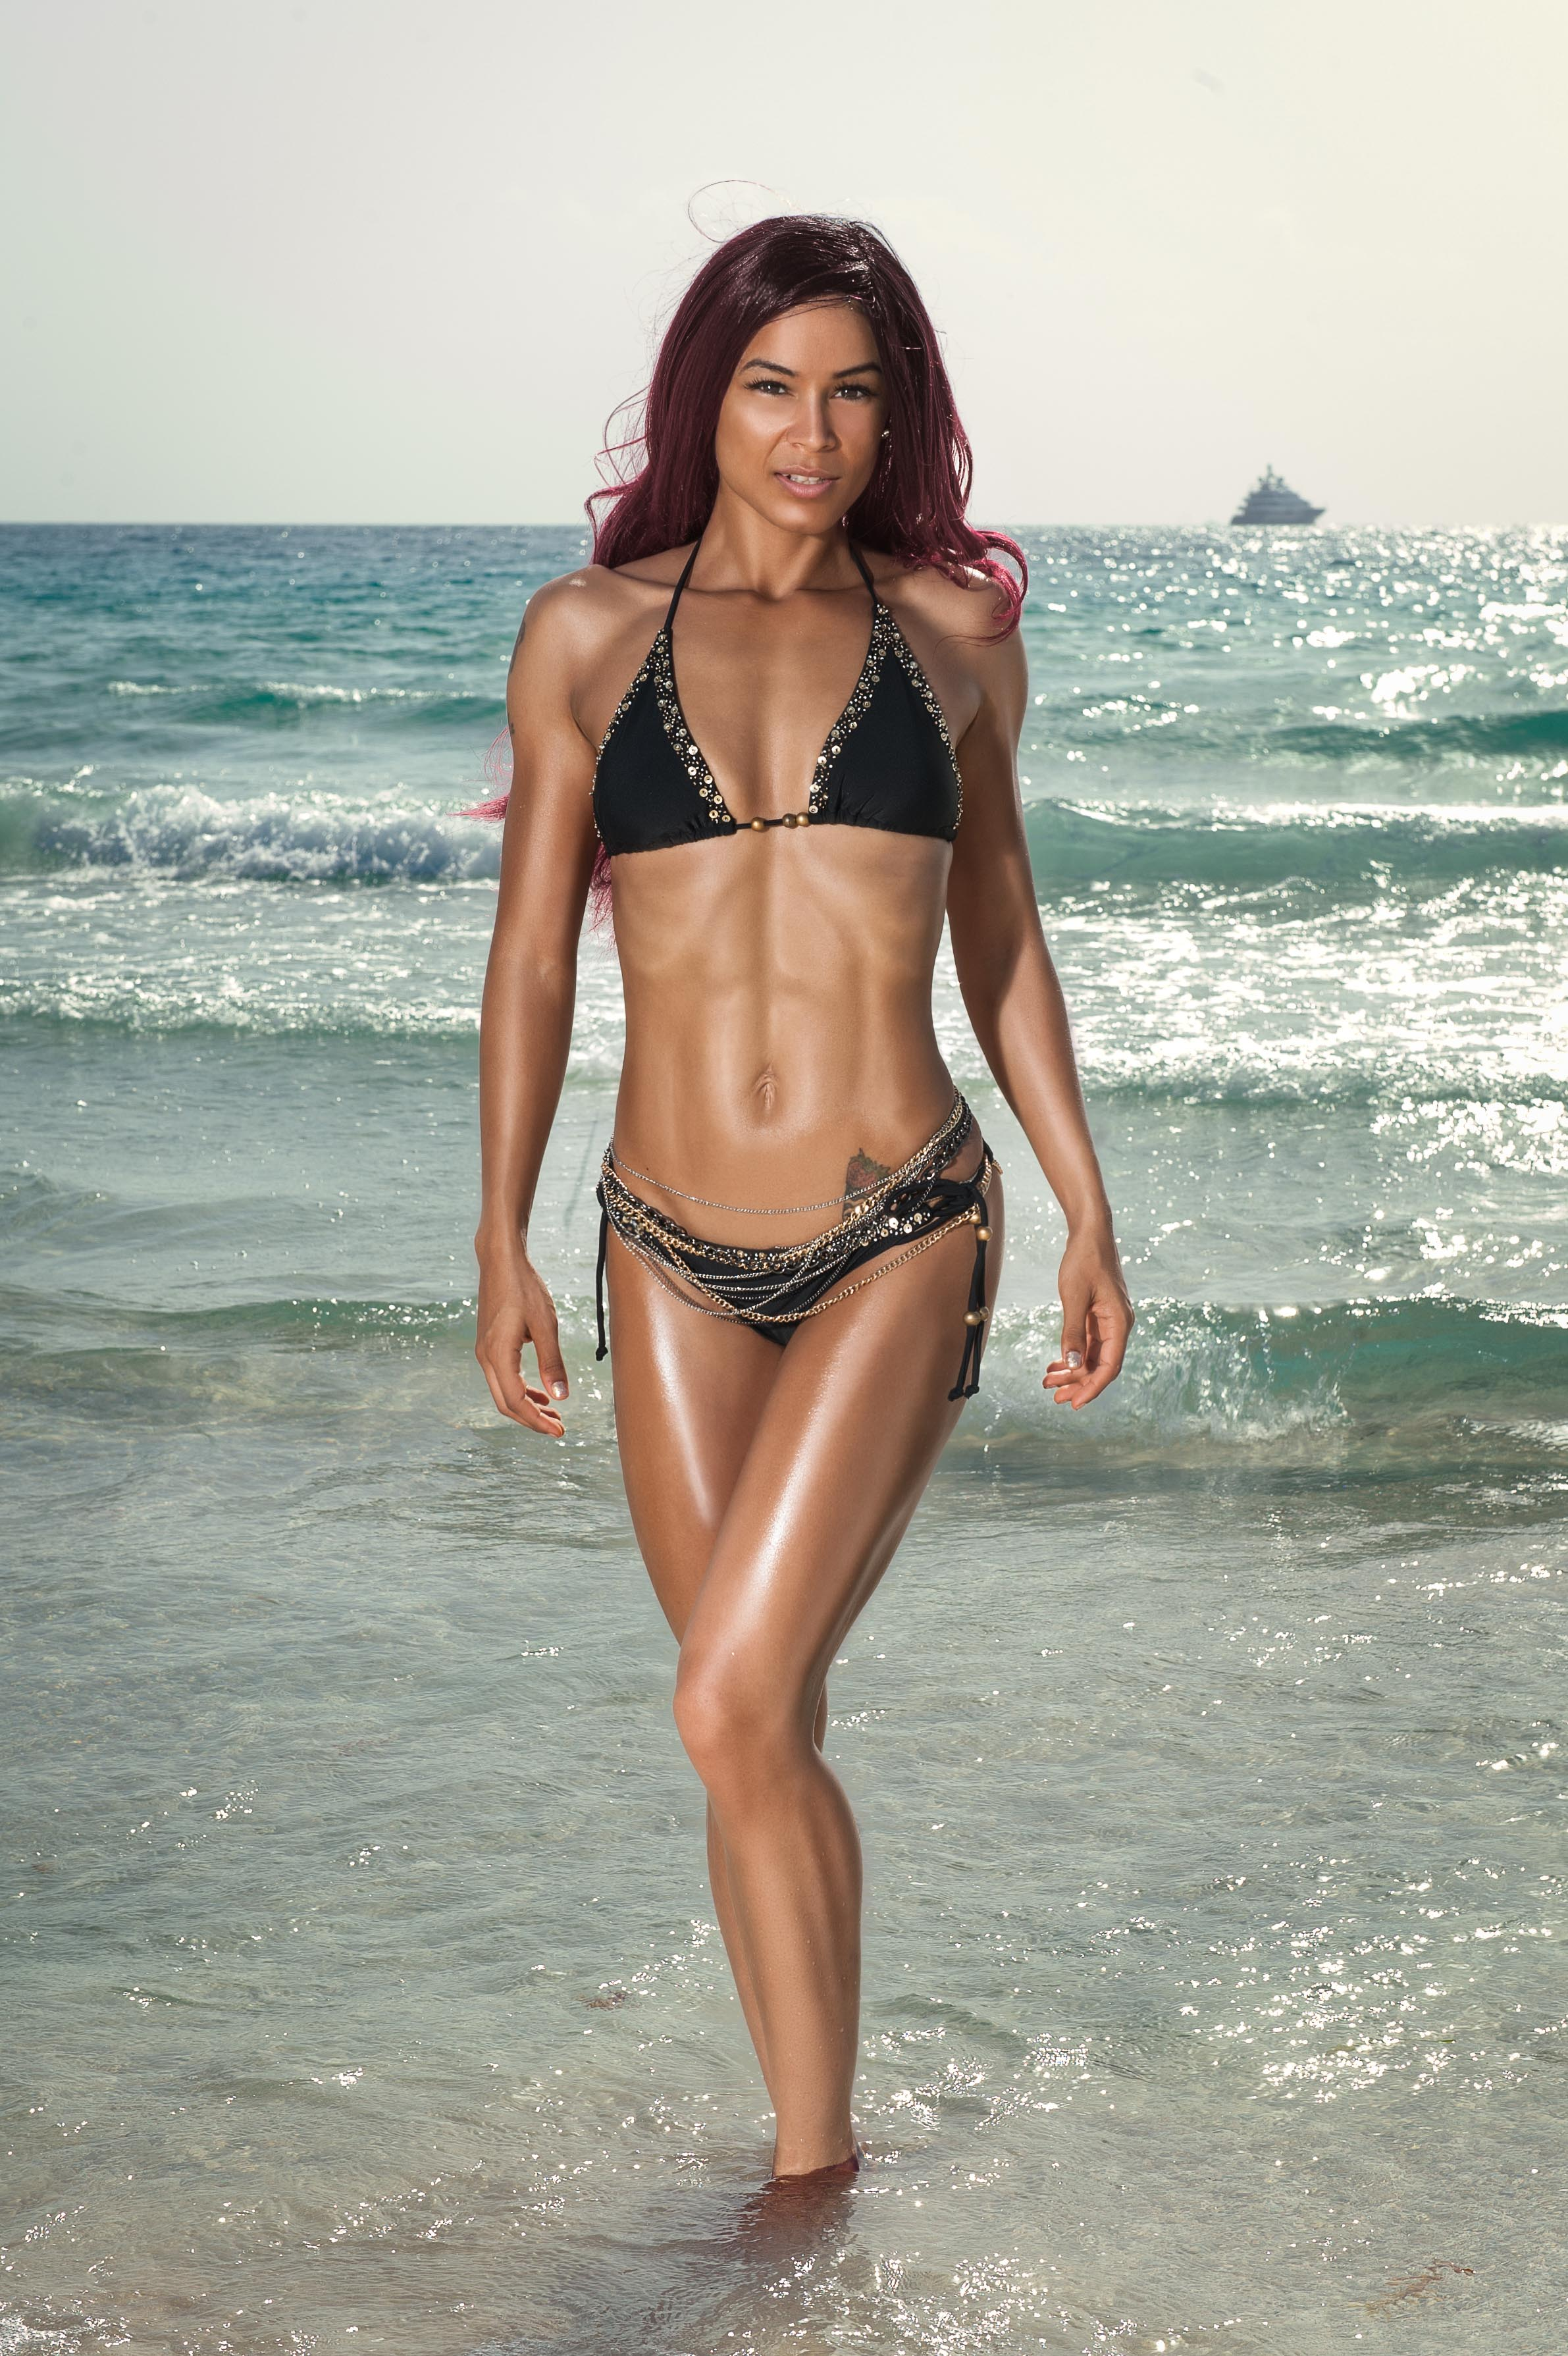 Female Bodybuilder Bikini Koko Photoshoot